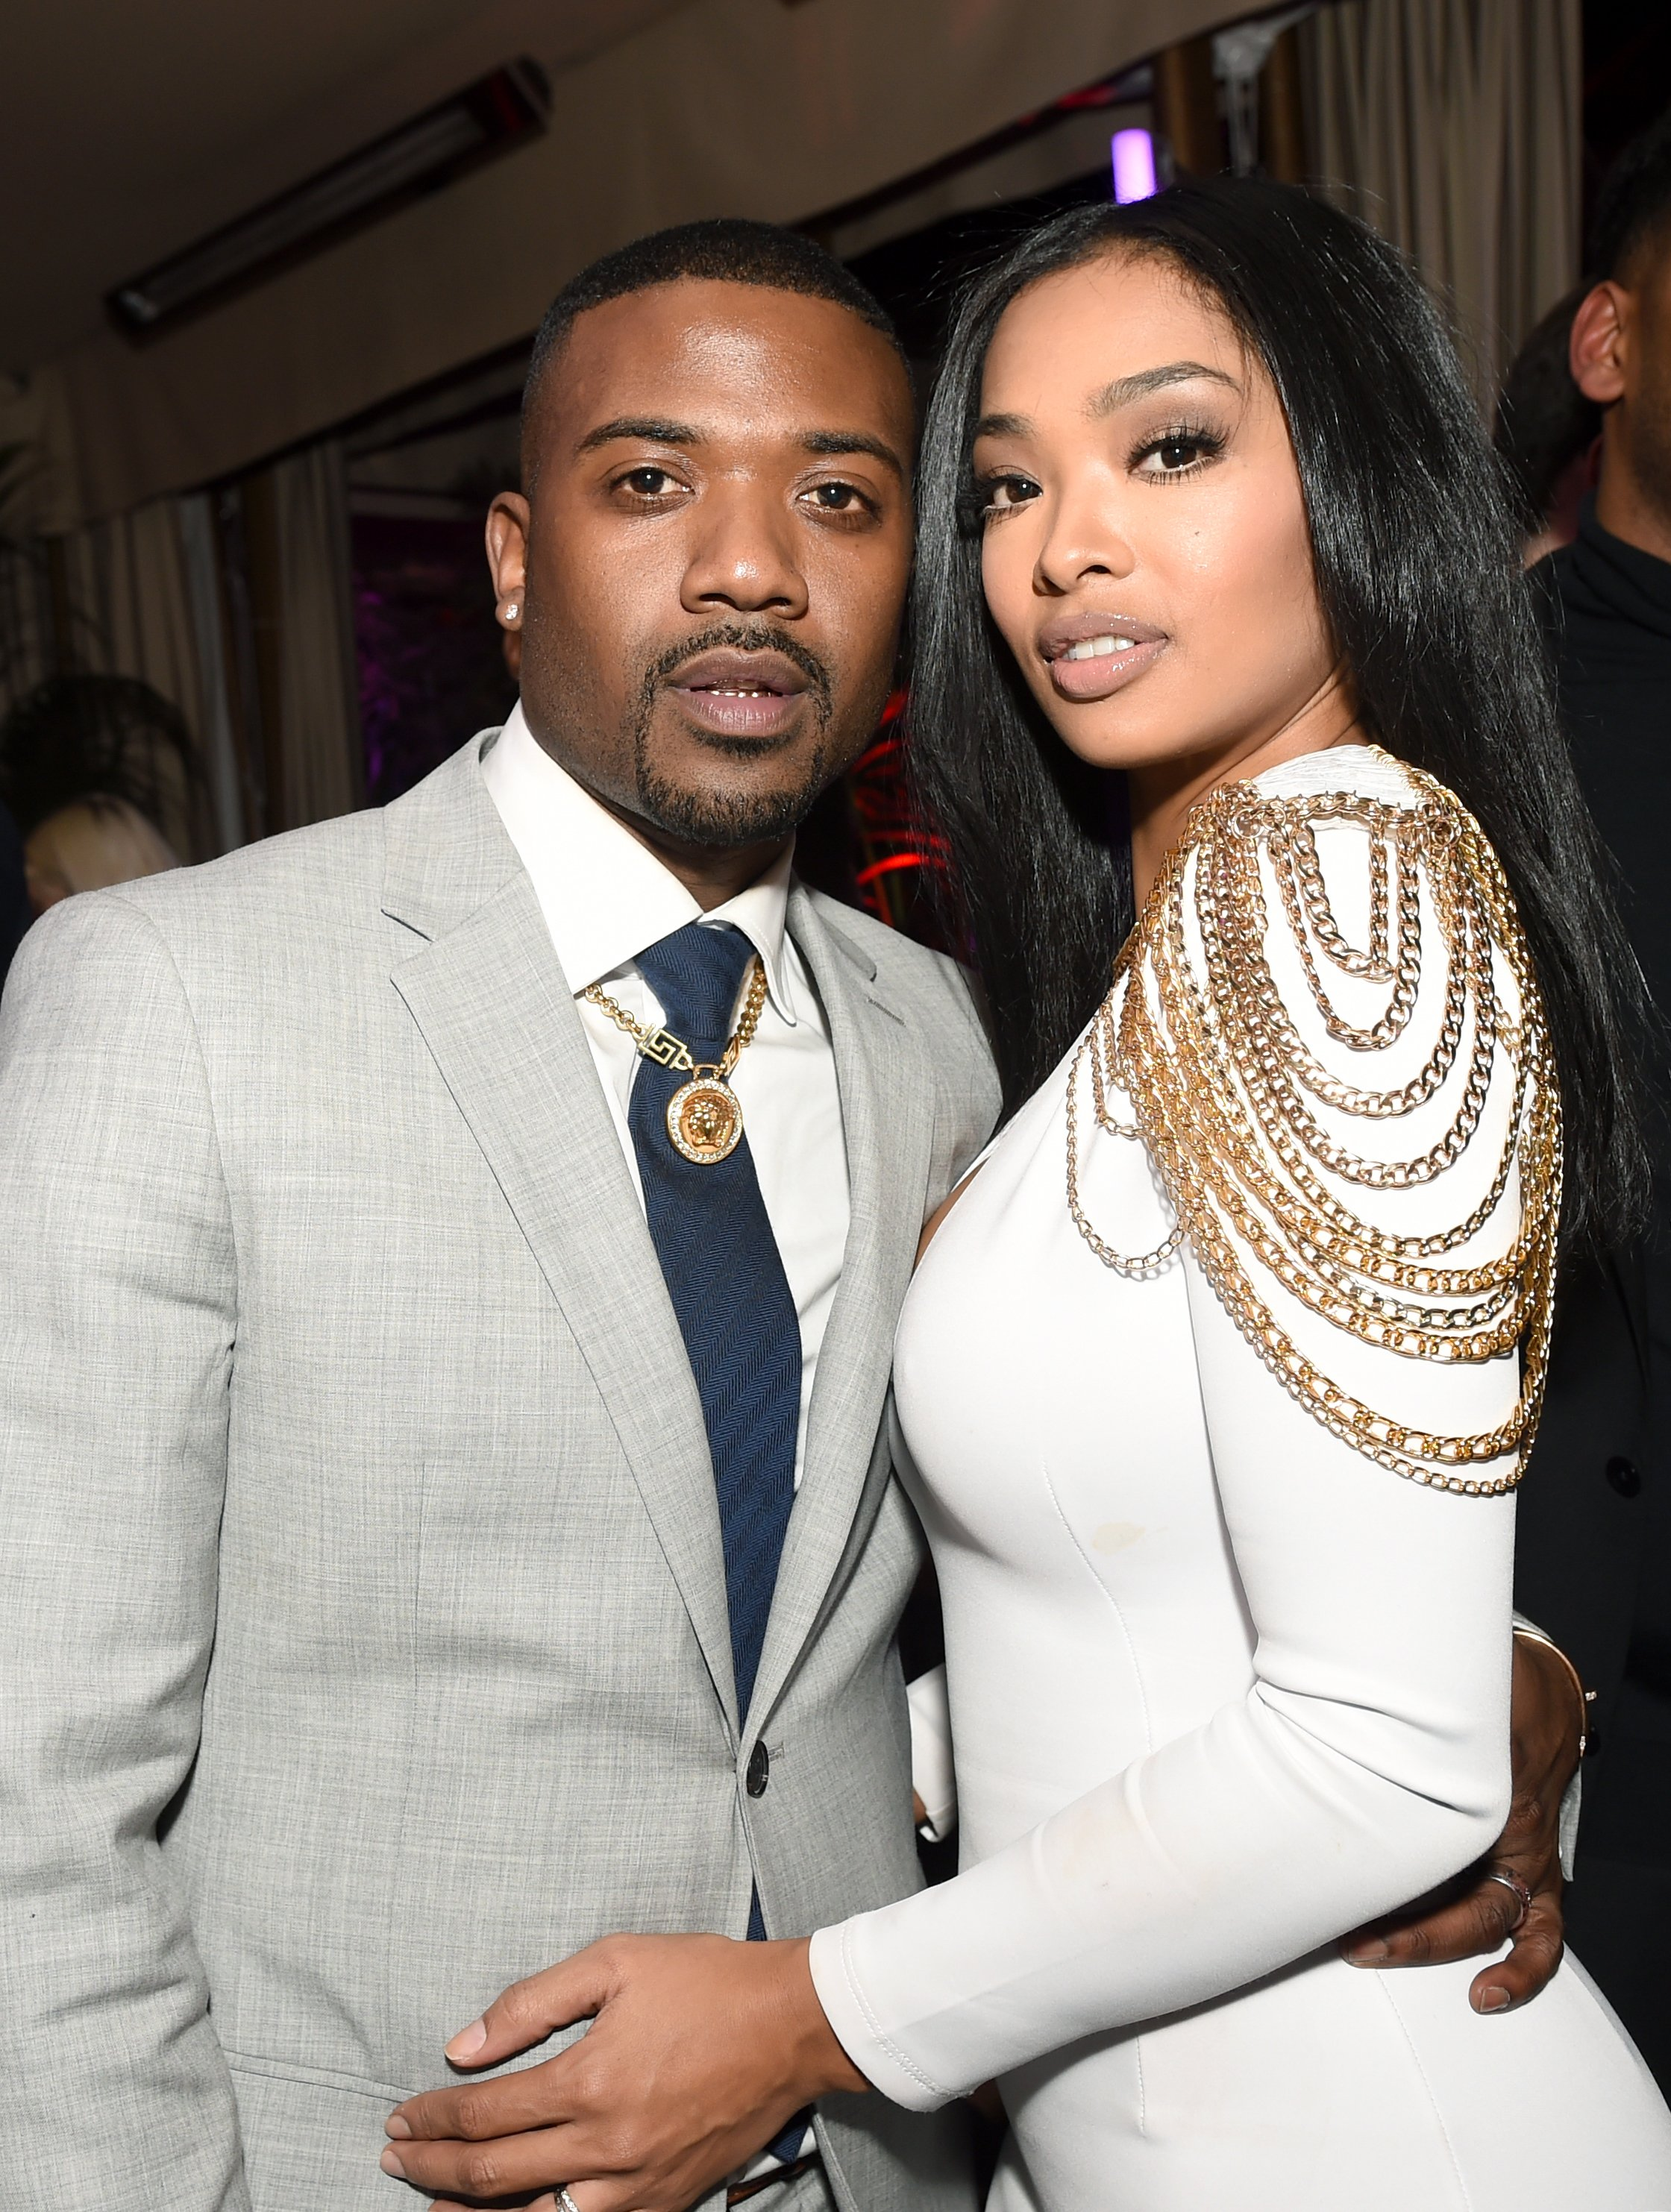 Ray J and wife Princess Love attend a GQ Magazine-sponsored Grammy event in February 2017 in Hollywood, California. | Source: Getty Images